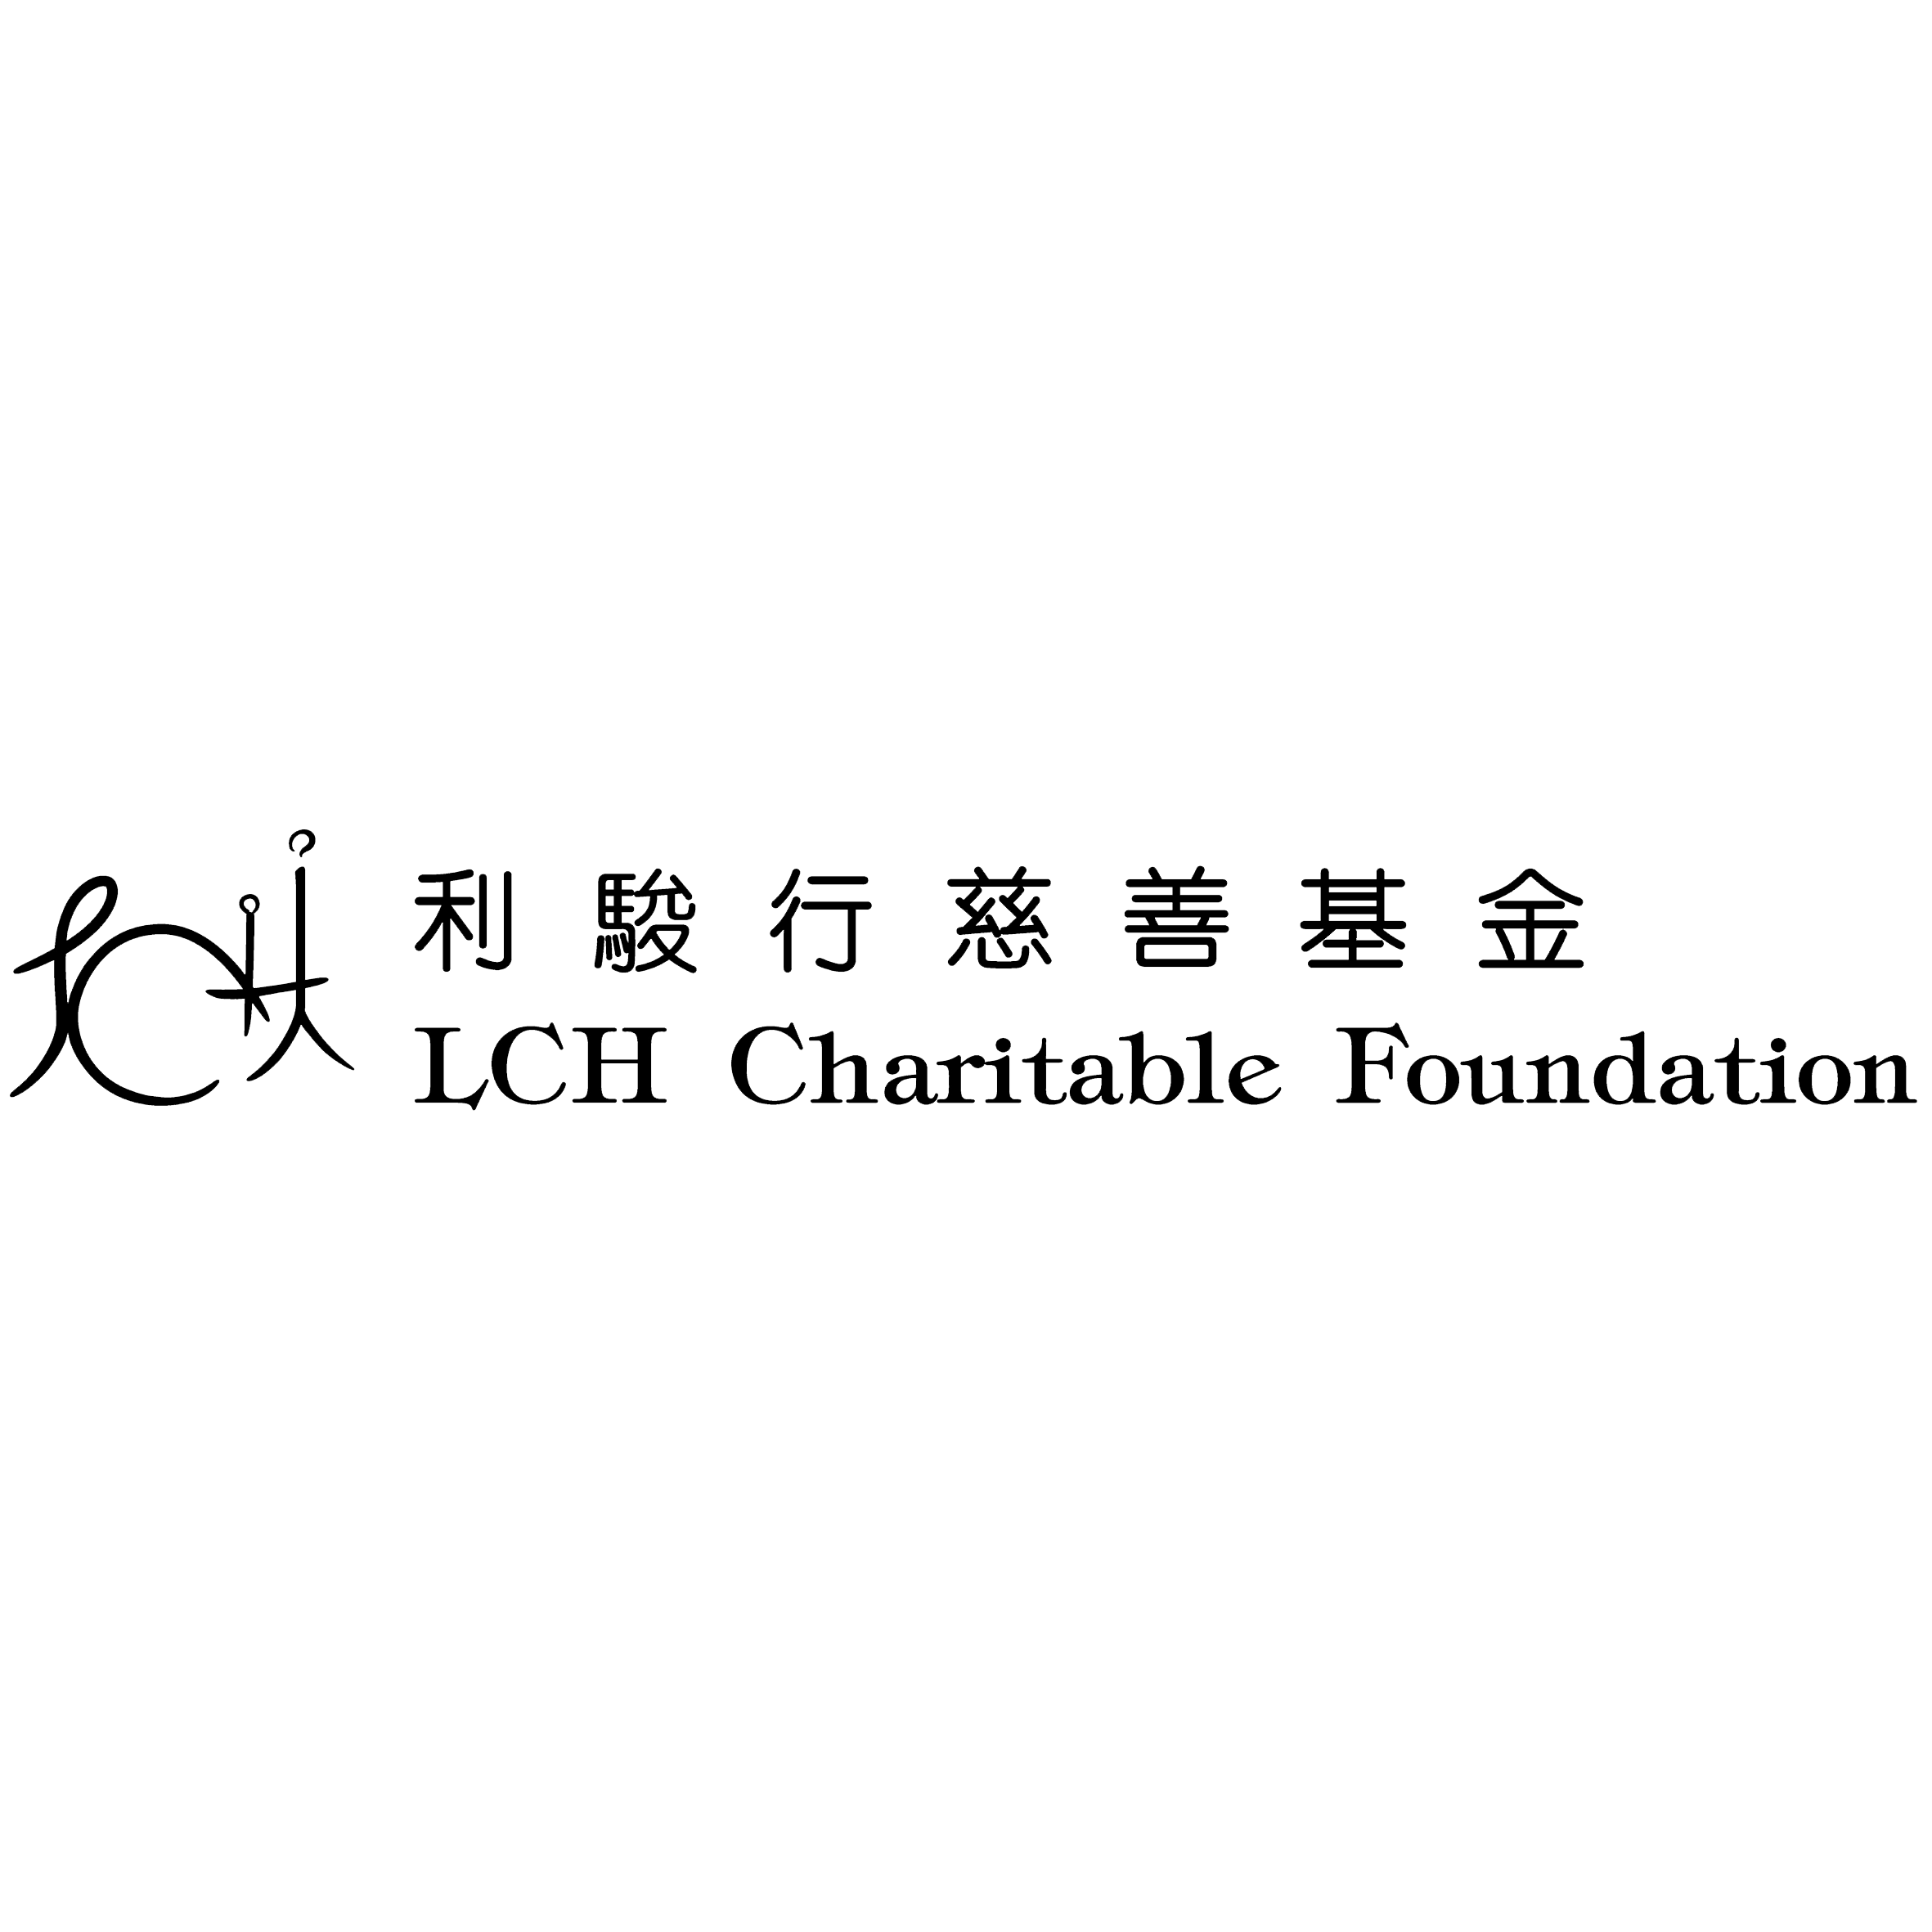 LCH Charitable Foundation